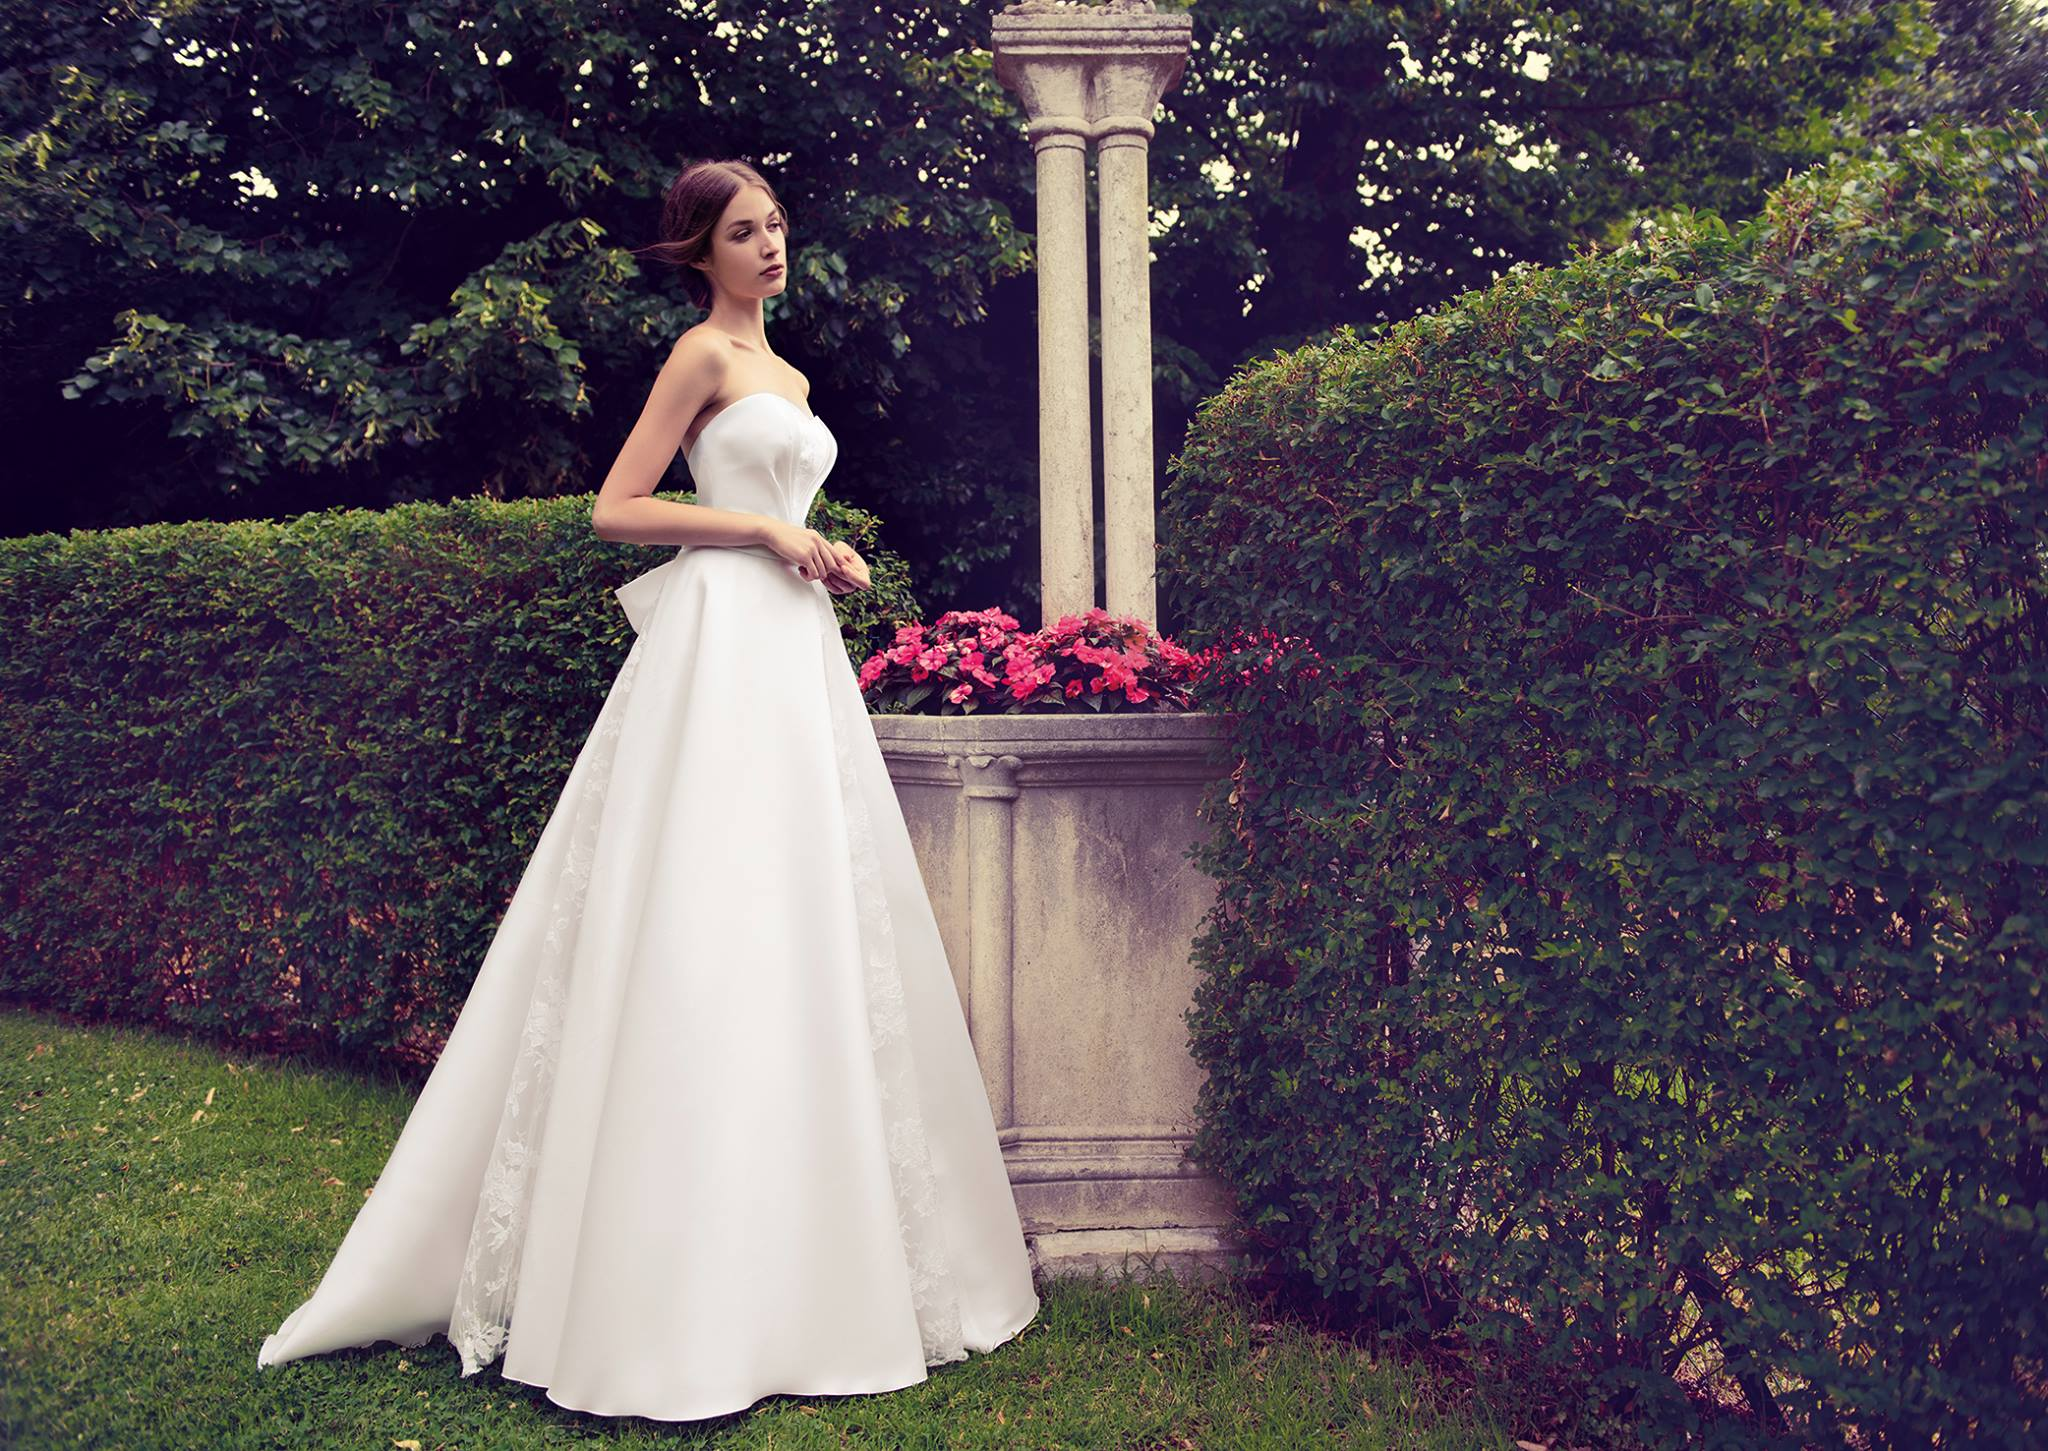 Giuseppe Papini Bridal - Classic Wedding Dress.jpg